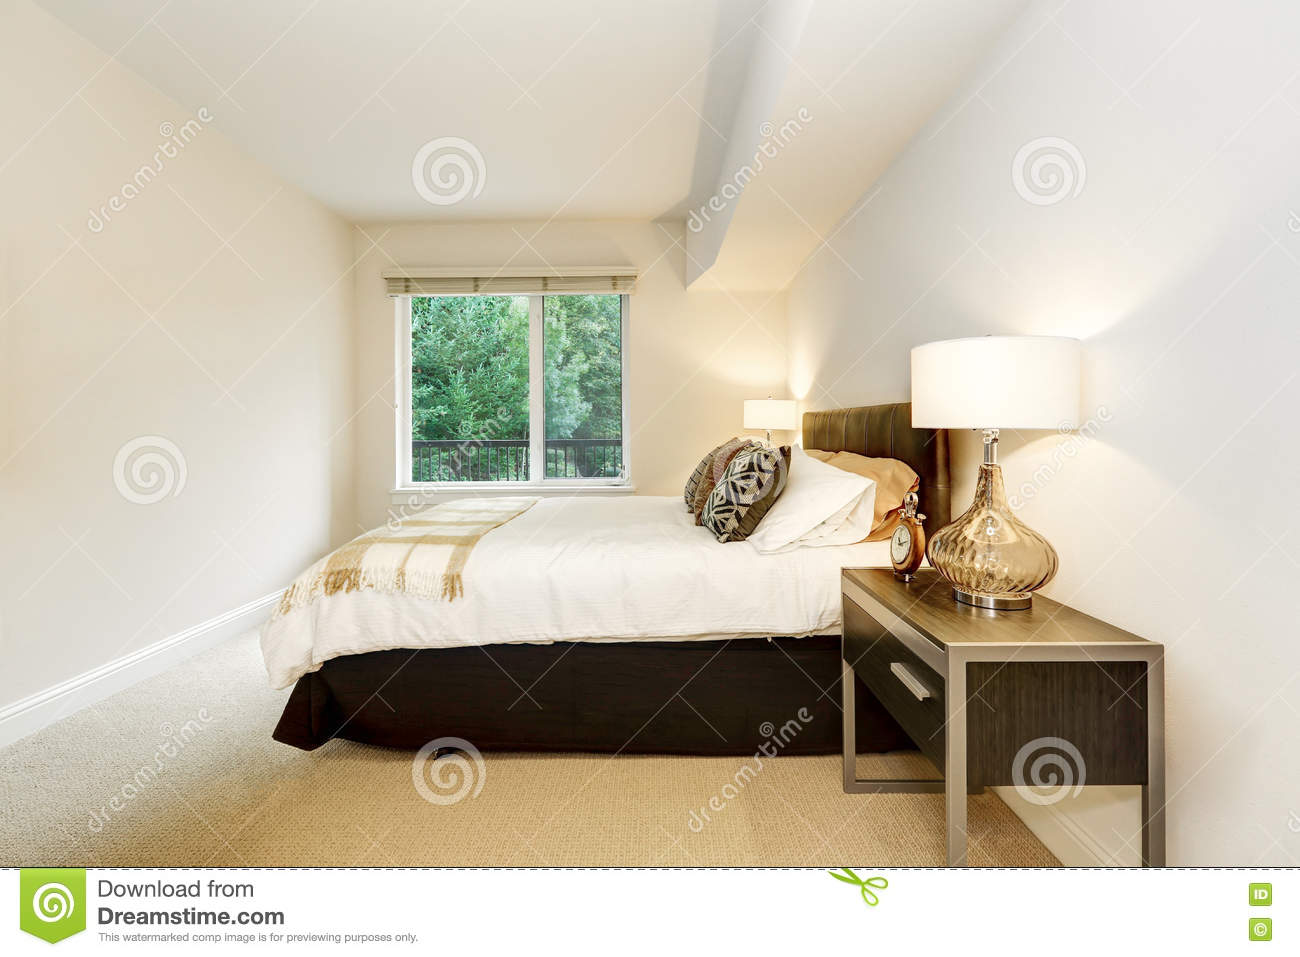 Neat Bedroom Neat Bedroom With A Bed And Nightstands With Lamps Stock Photo